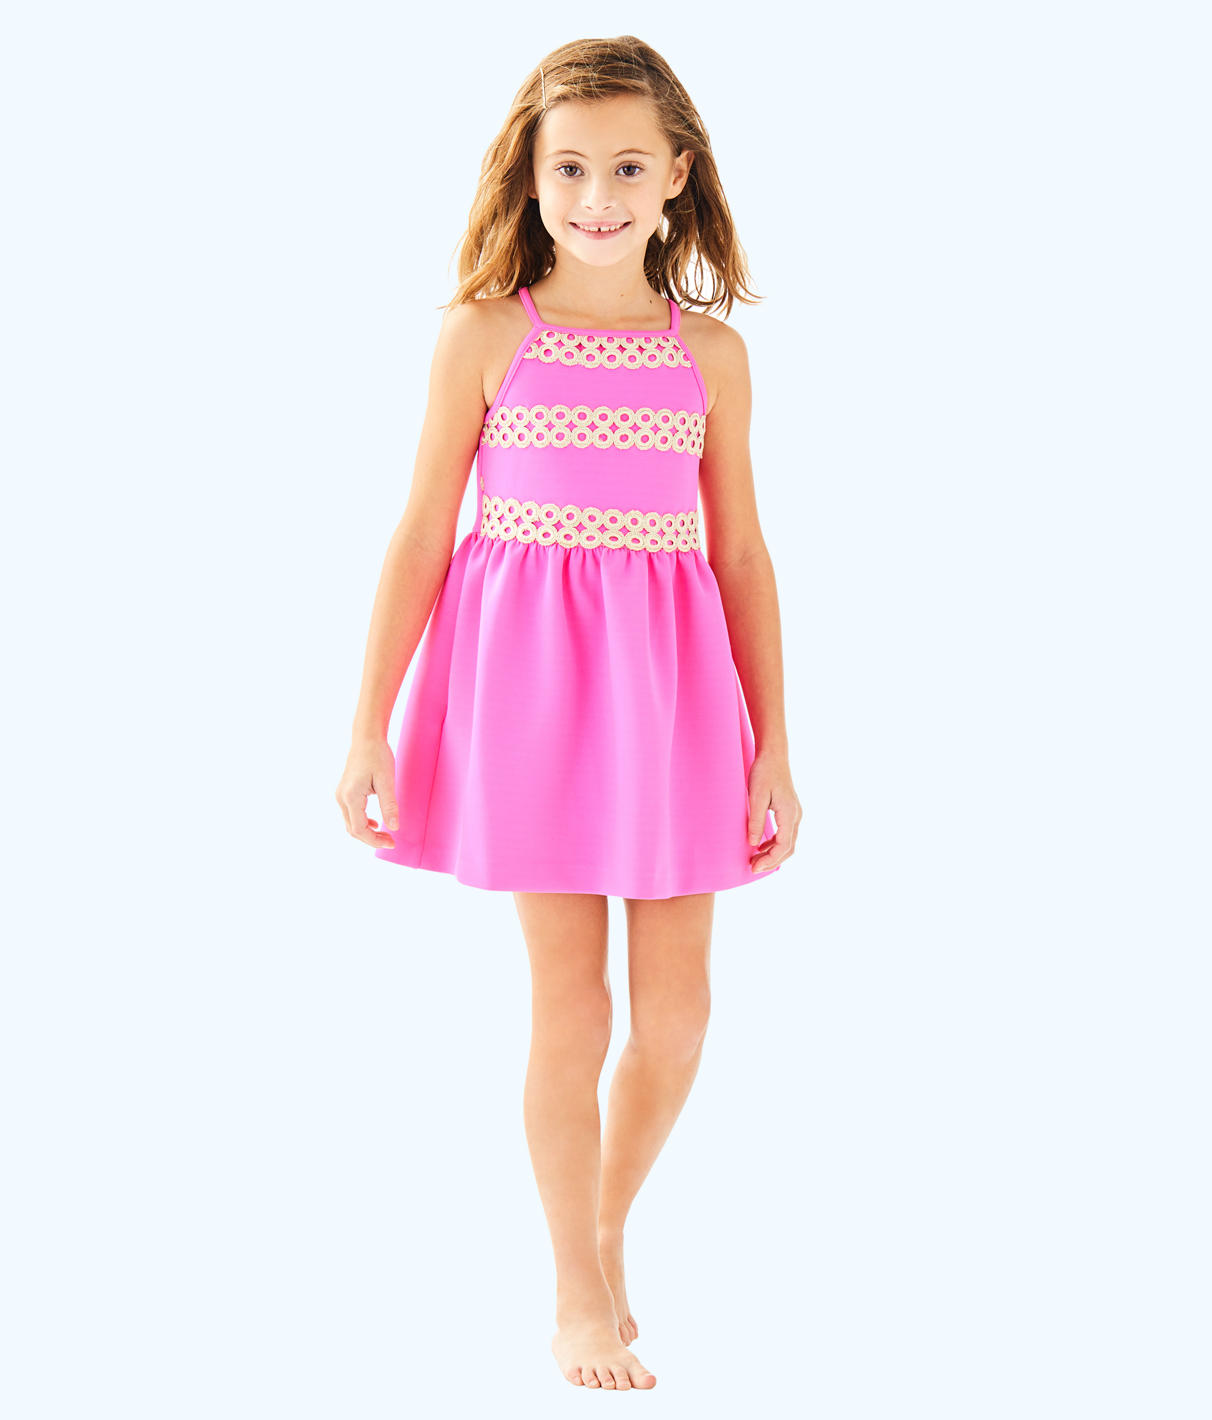 Lilly Pulitzer Lilly Pulitzer Girls Elize Dress